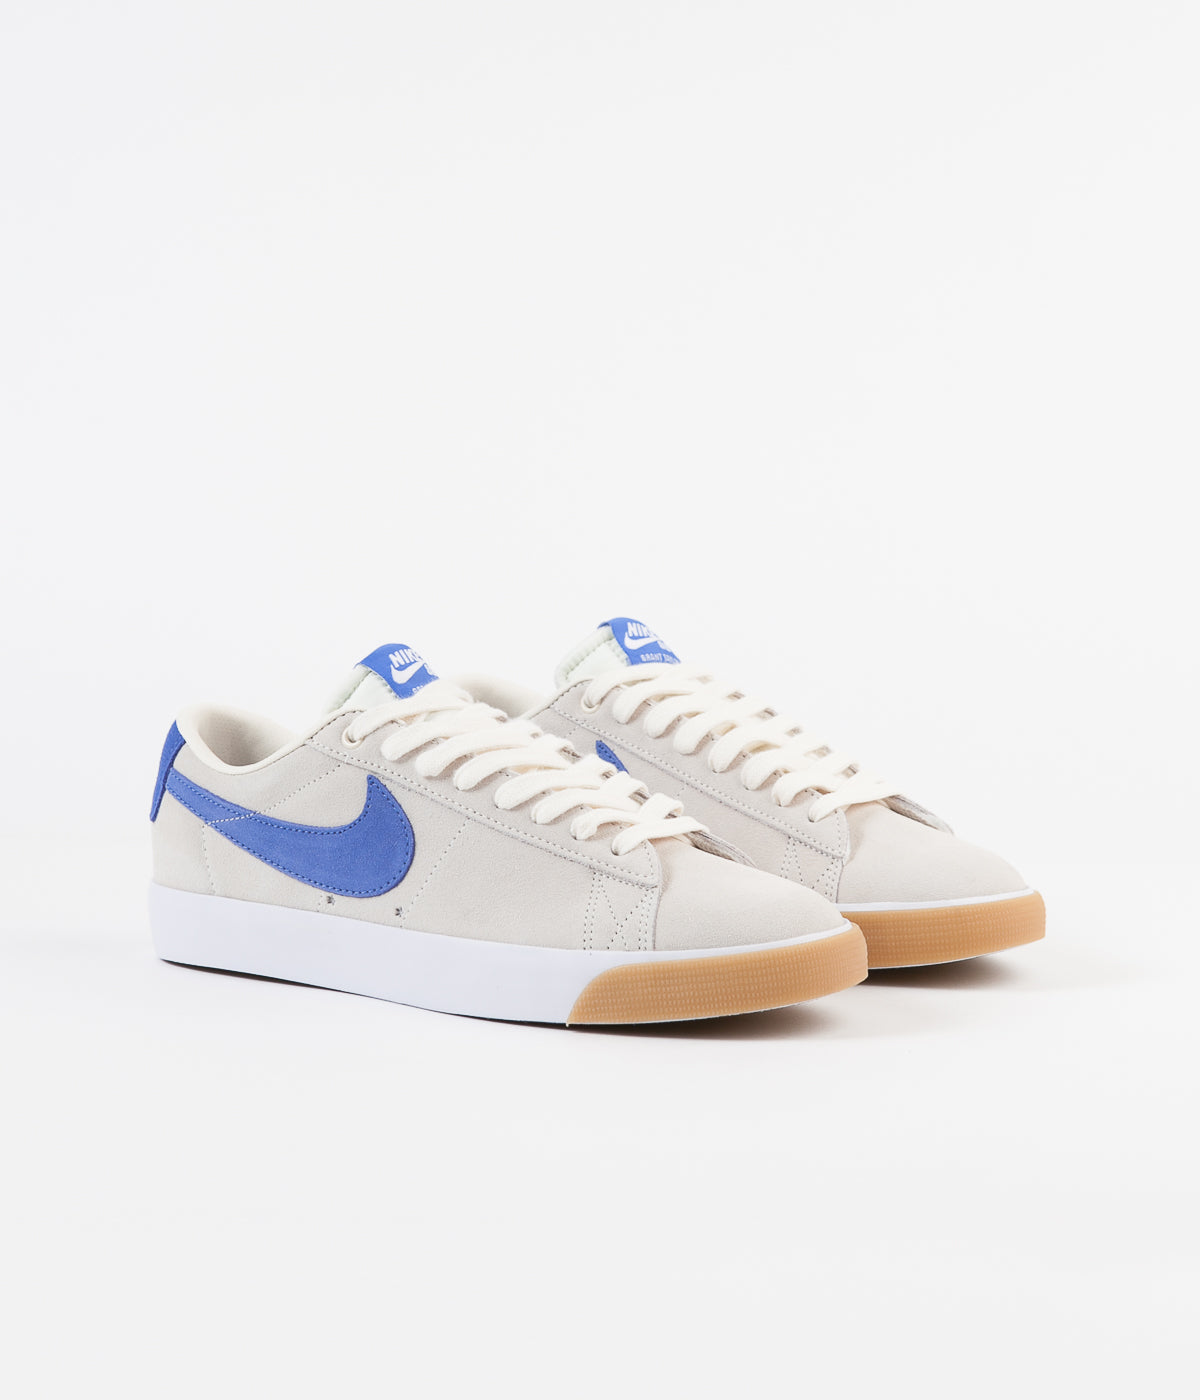 Nike SB Blazer Low GT Shoes - Pale Ivory / Pacific Blue - White